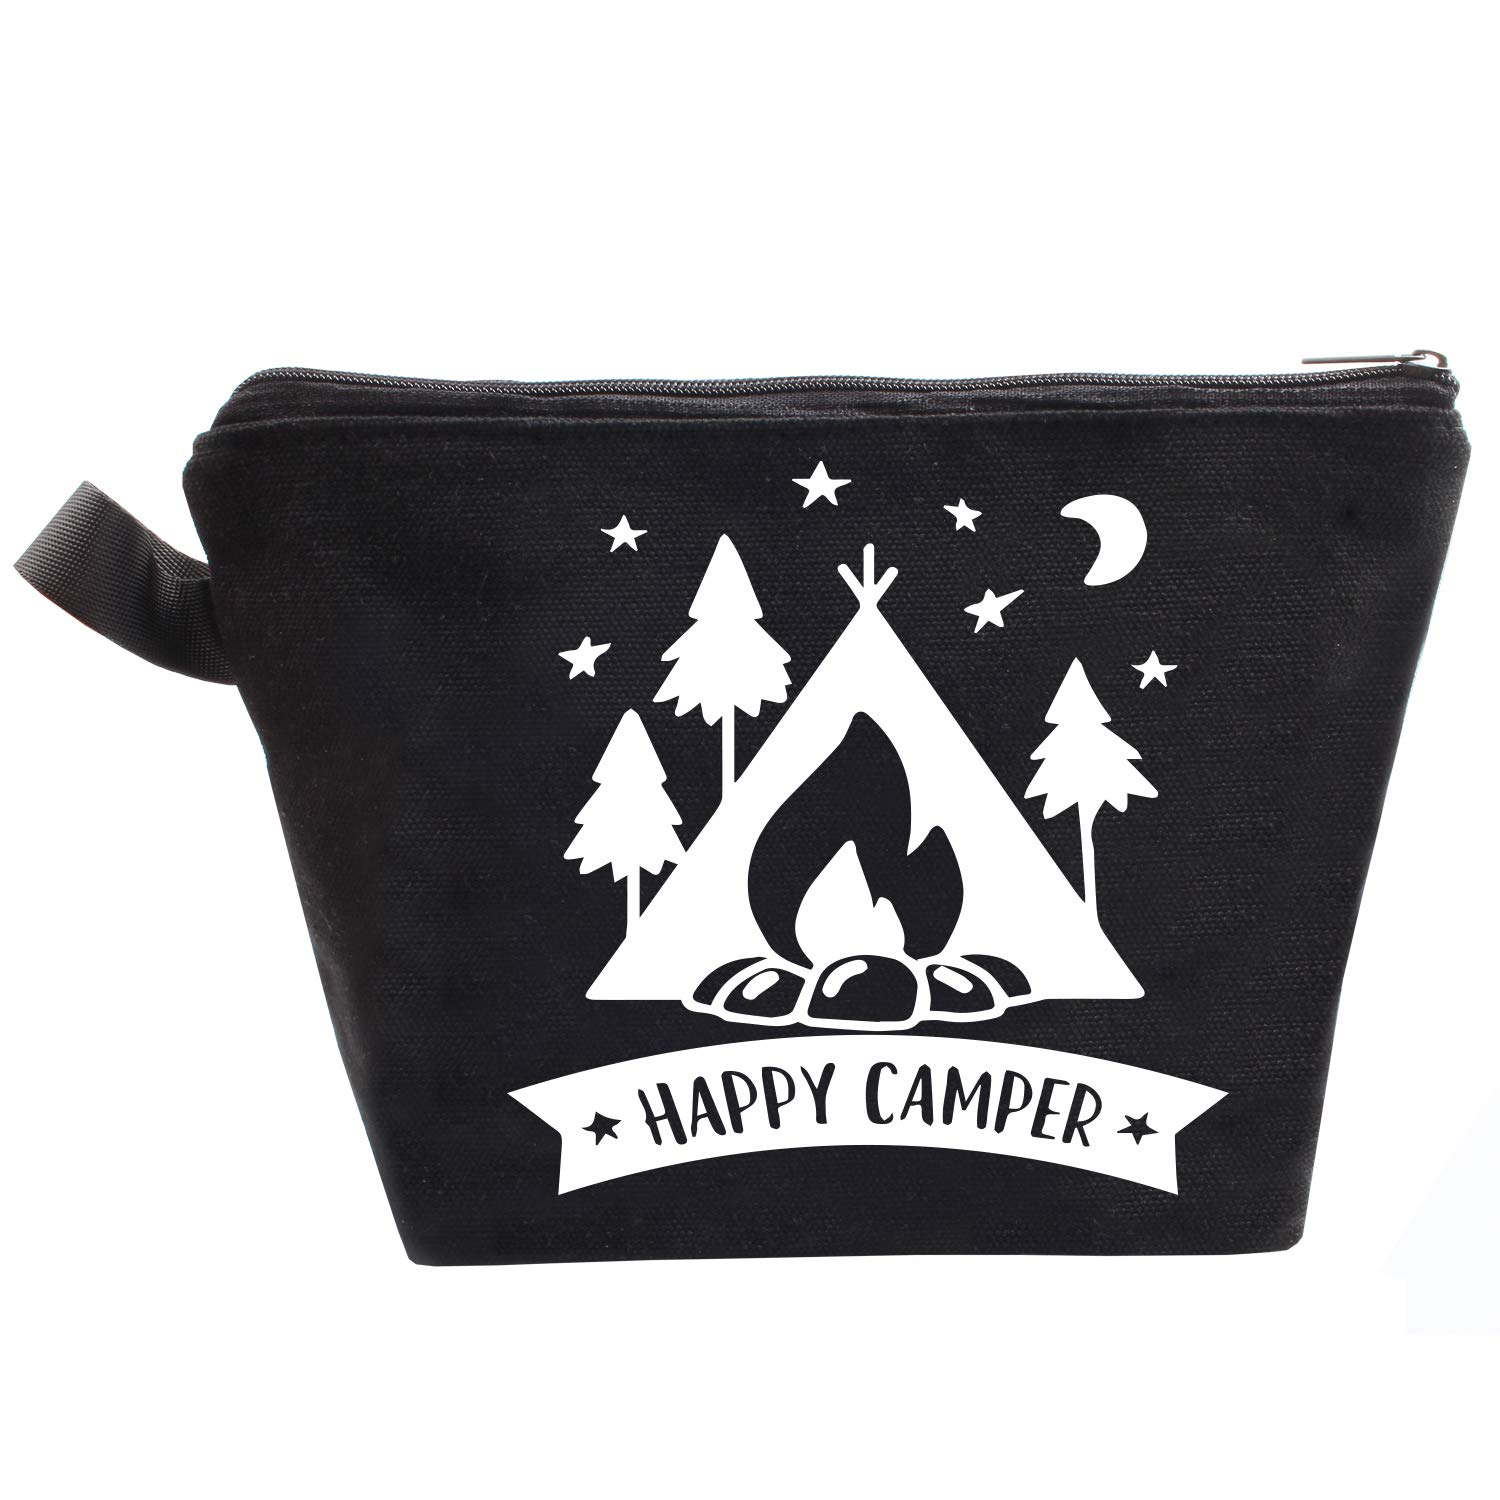 Funny Happy Camper Makeup Bag, Camping Lovers Gifts for Women, Wife, Daughter, Sister, Aunt, Best Friends